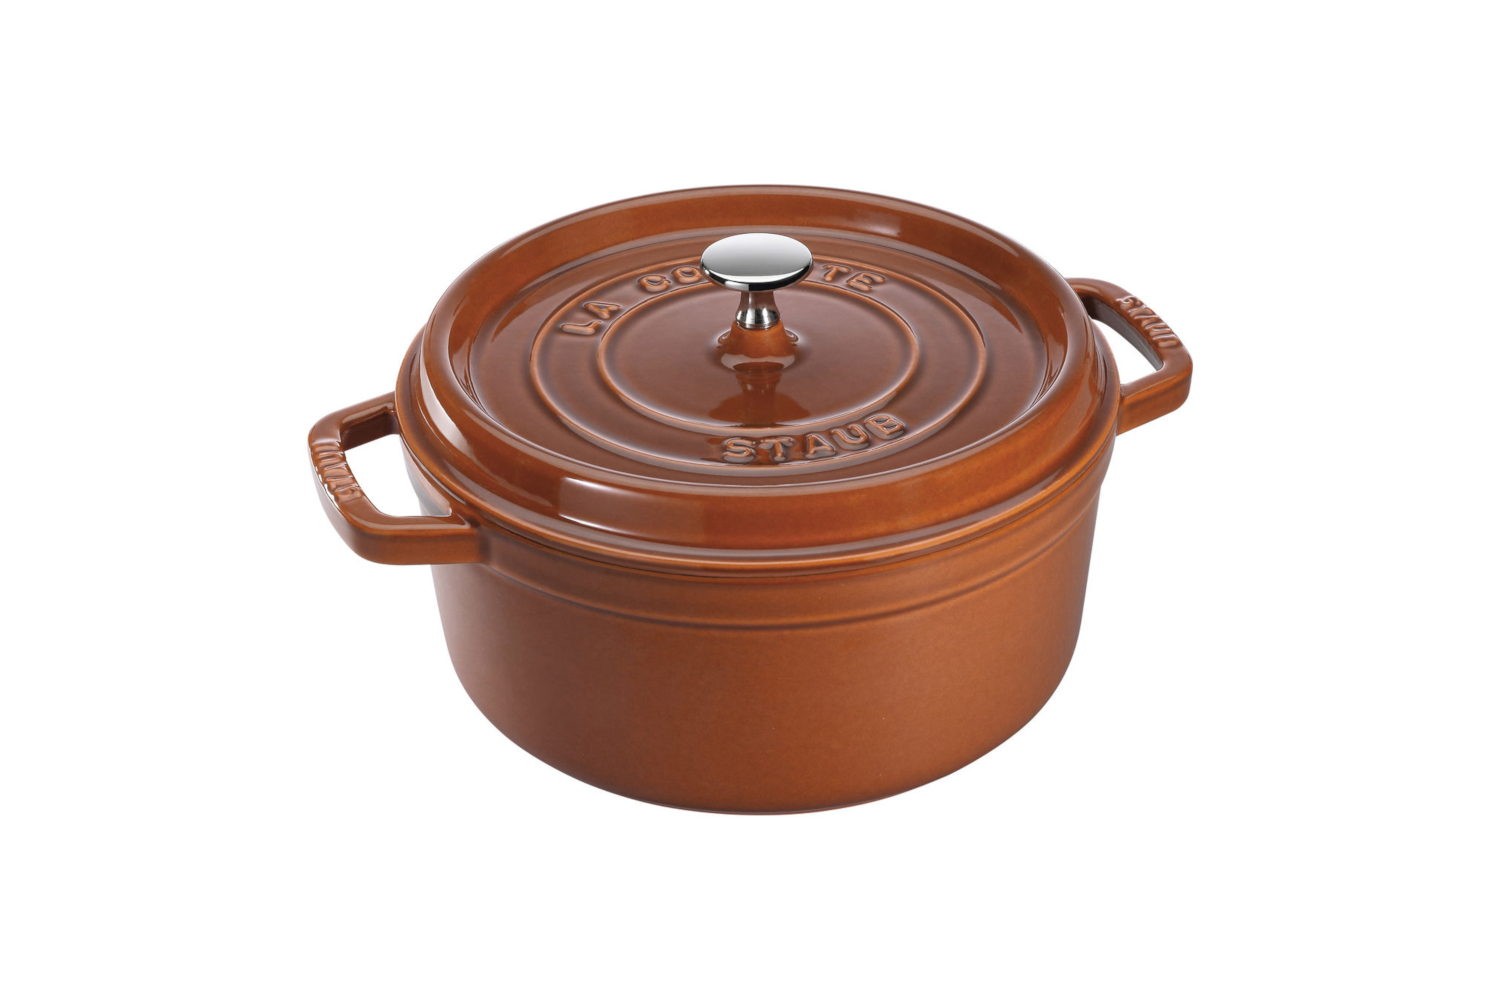 Staub Cast Iron 7 qt. Round Cocotte - Burnt Orange w/Stainless Steel Knob